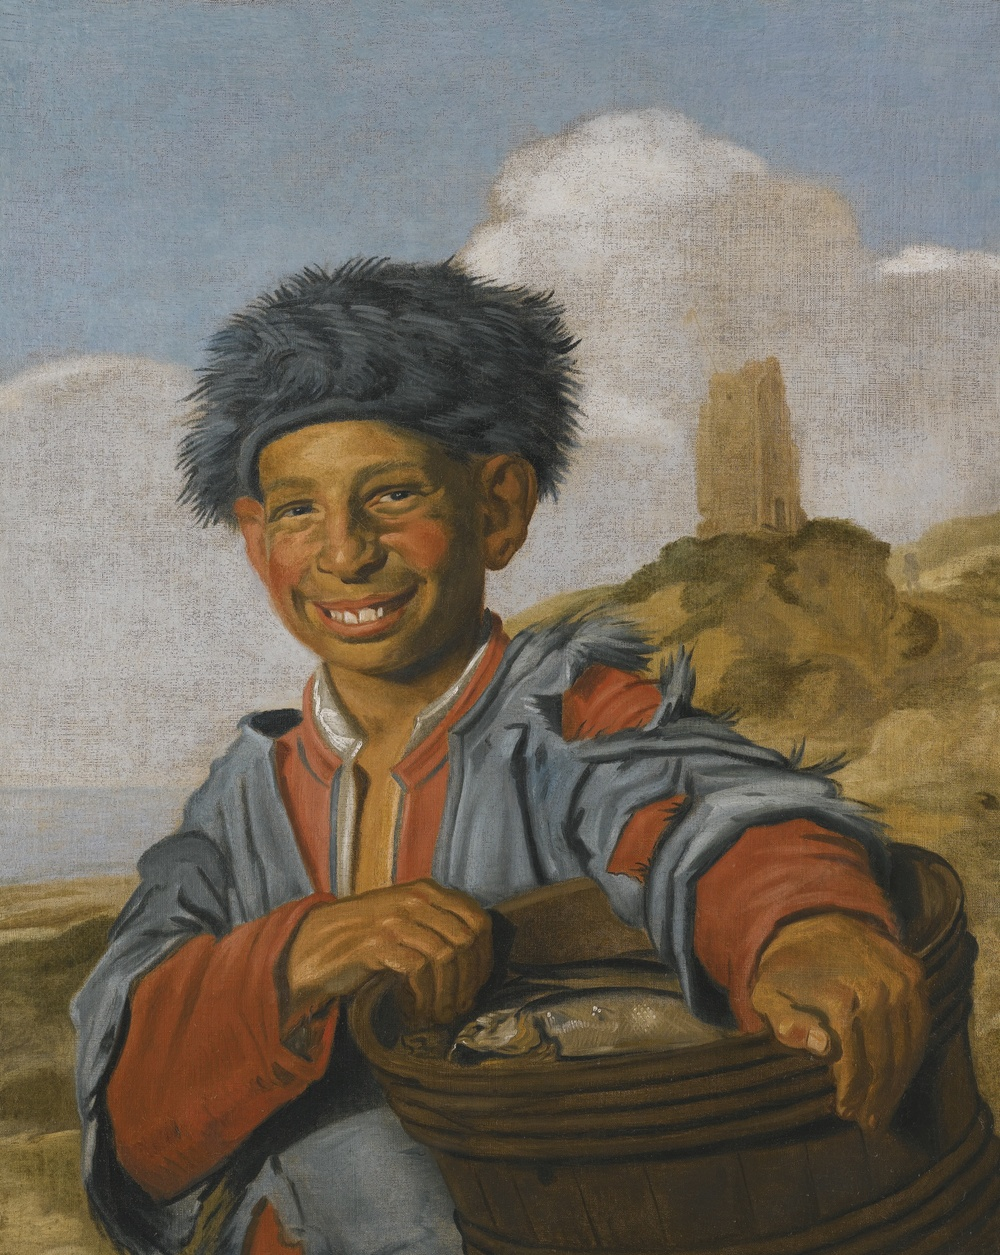 The Laughing Fisherboy by Frans Hals. Available here.